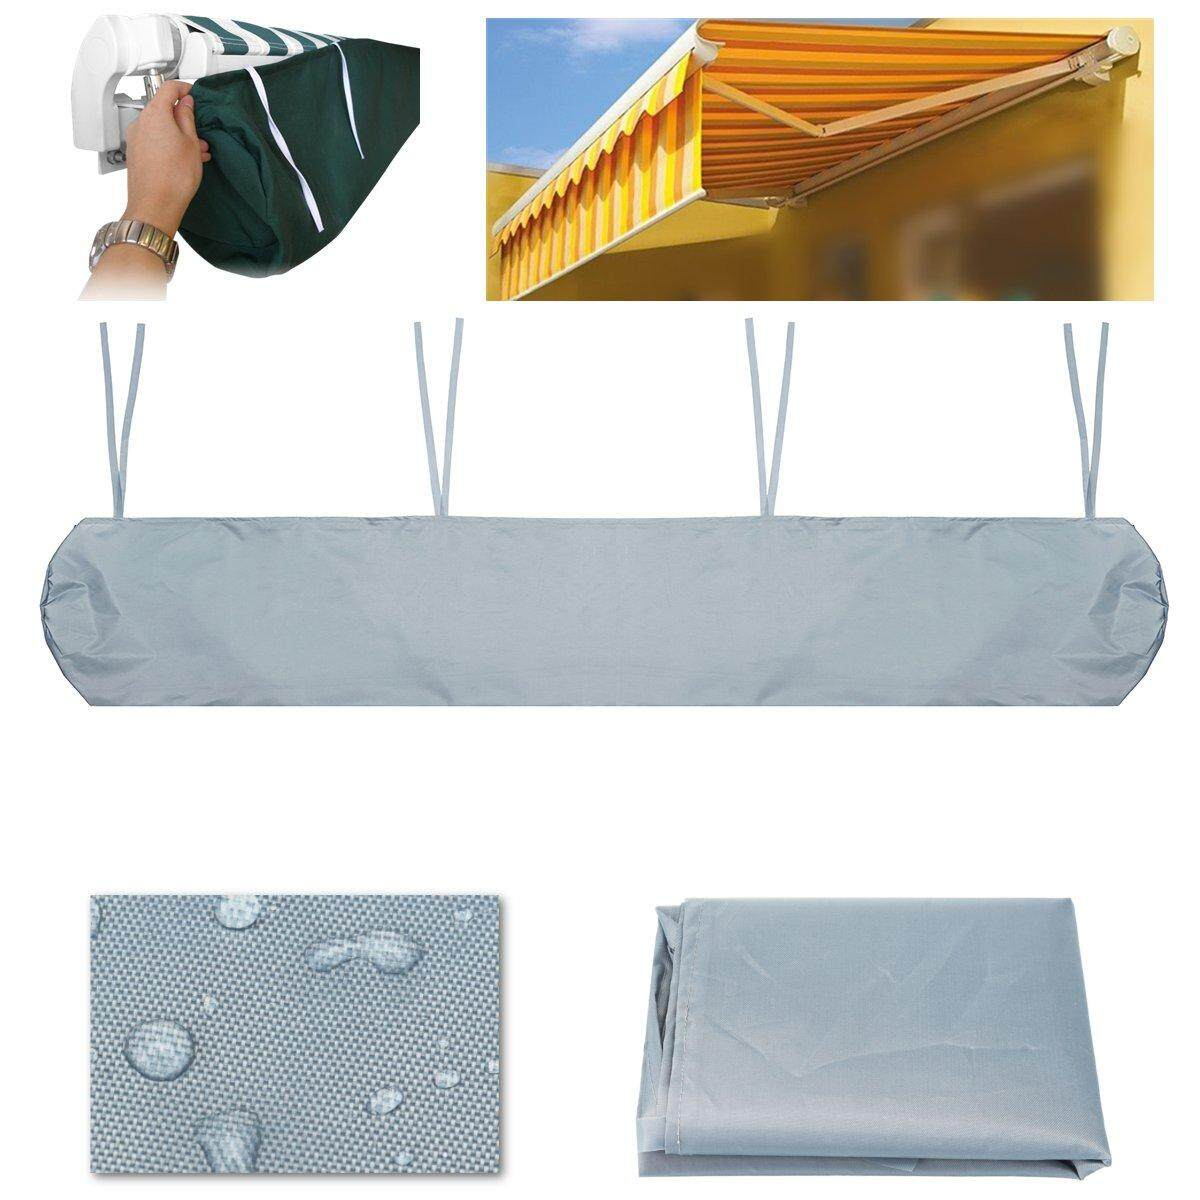 7 Size Patio Awning Winter Storage Bag Rain Weather Cover Protector Sun Canopy#2m